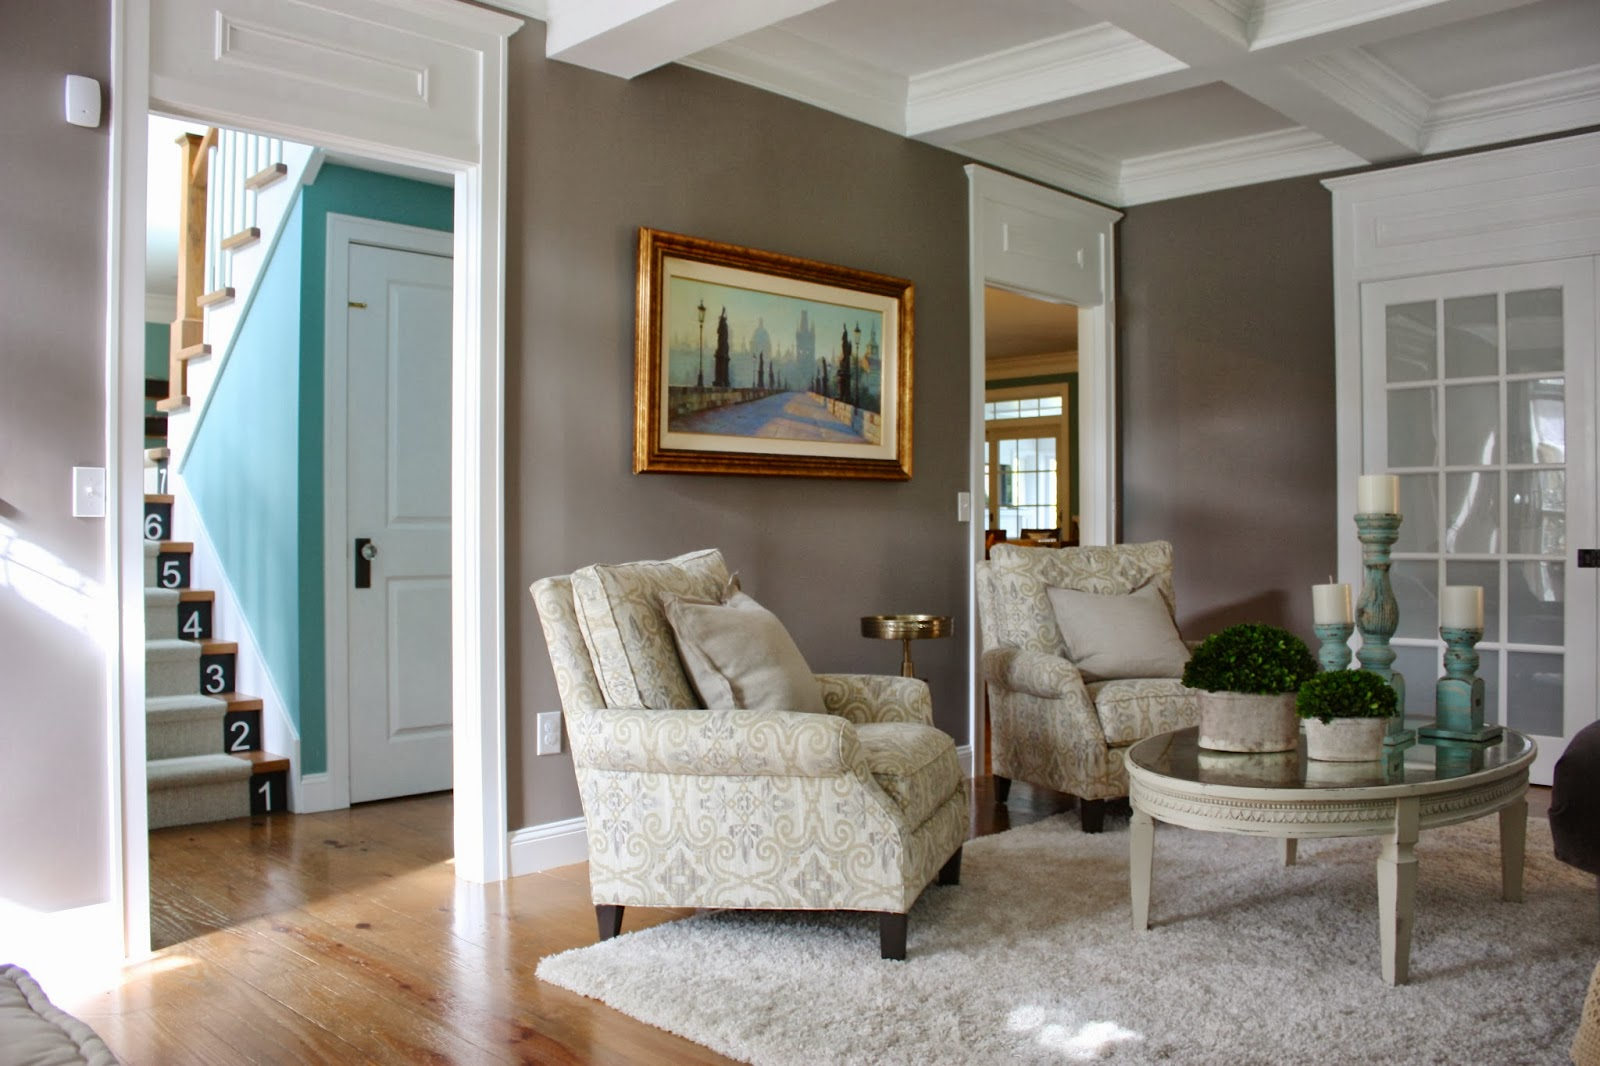 martha stewart living room. The Yellow Cape Cod  Before After Living Room Makeover A Design Plan Comes To Life